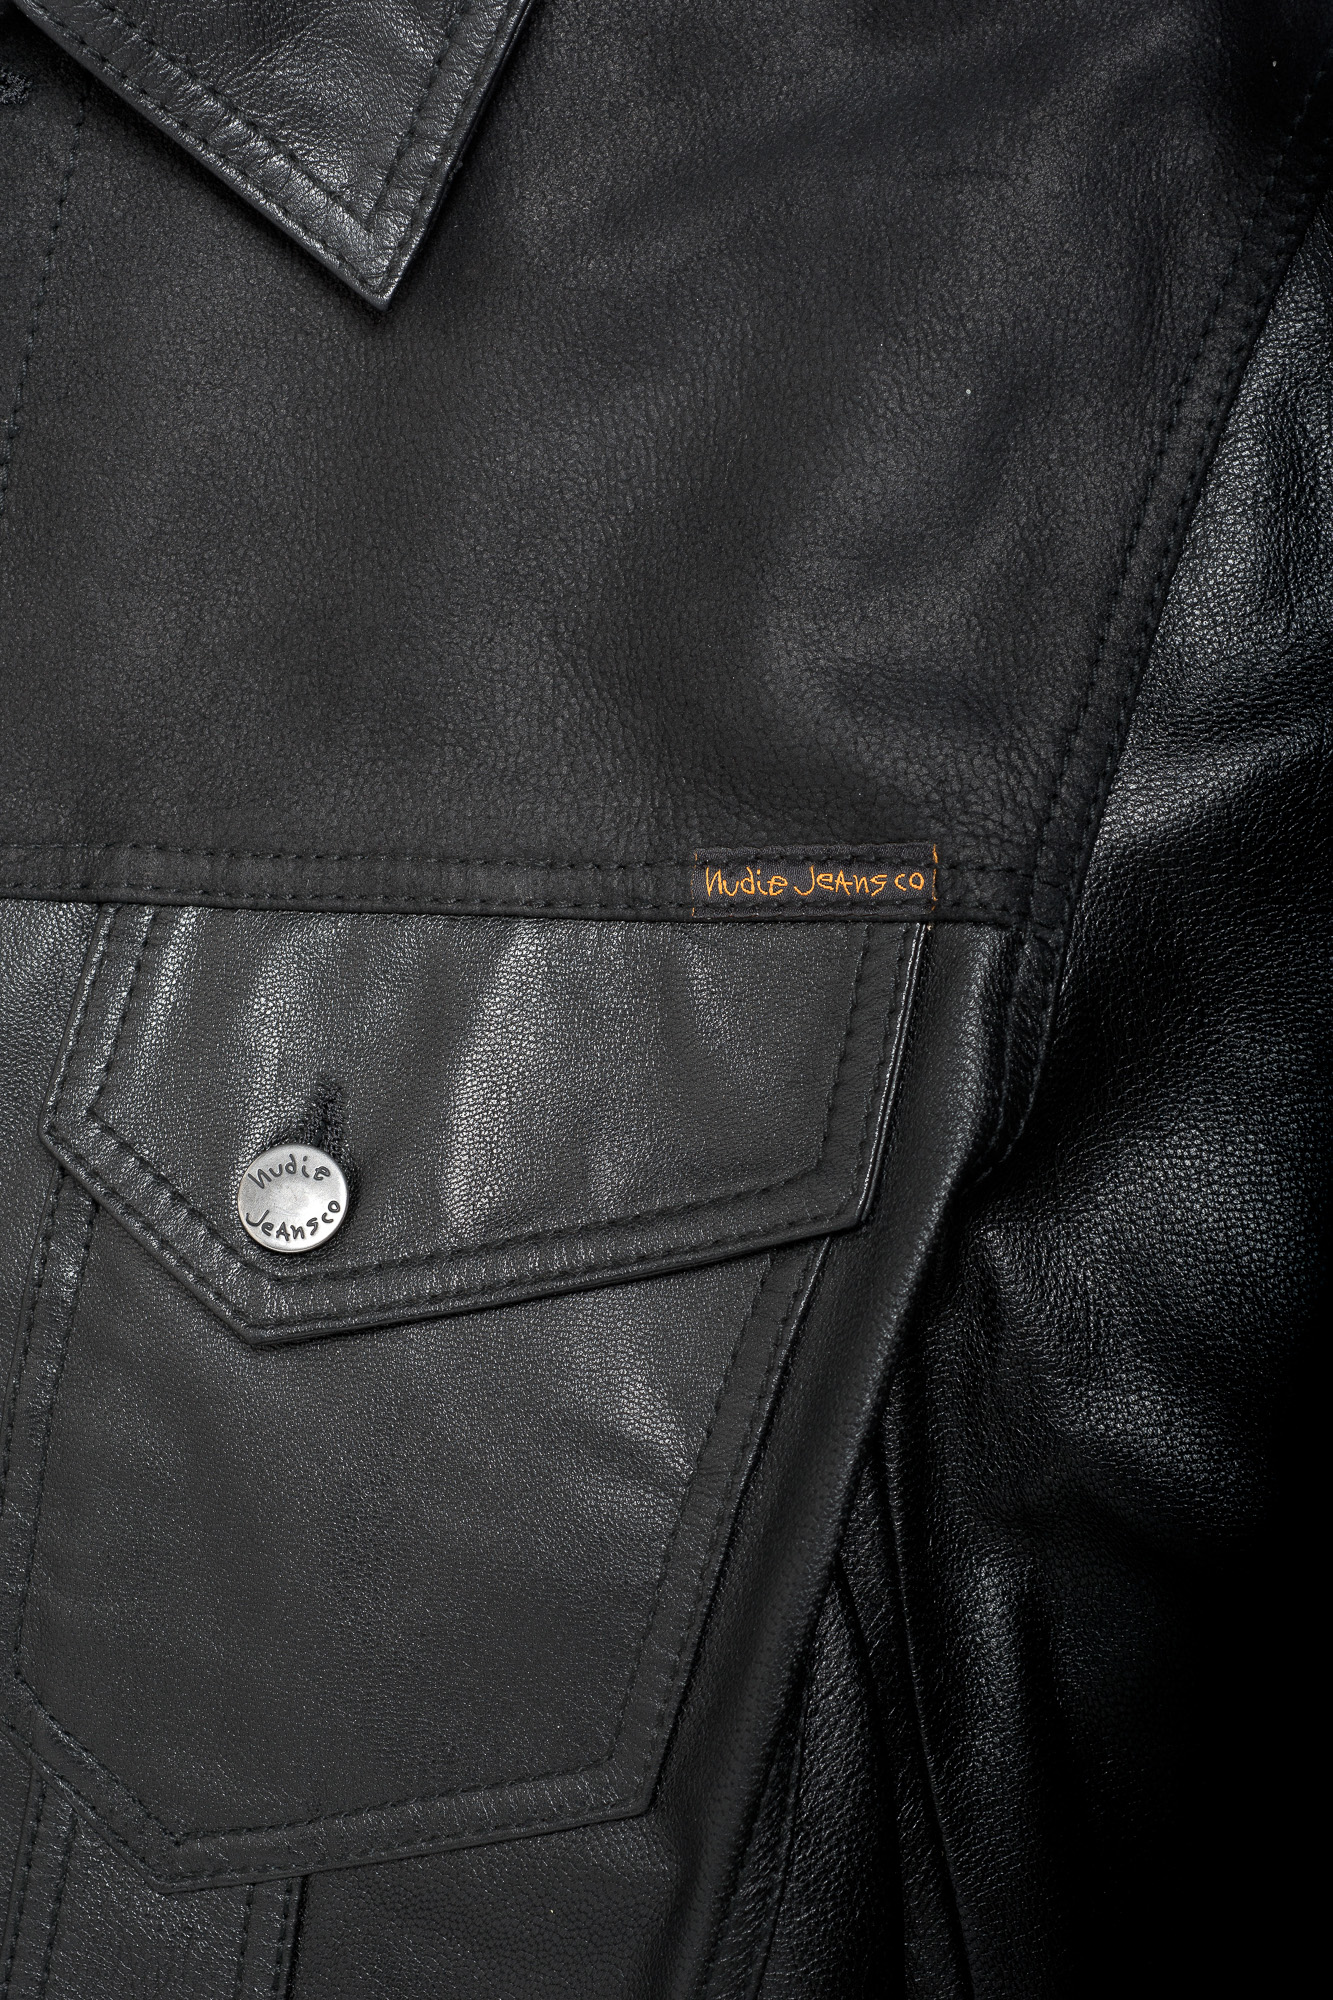 Perry Leather _ Crust Jkt Black 160339 02